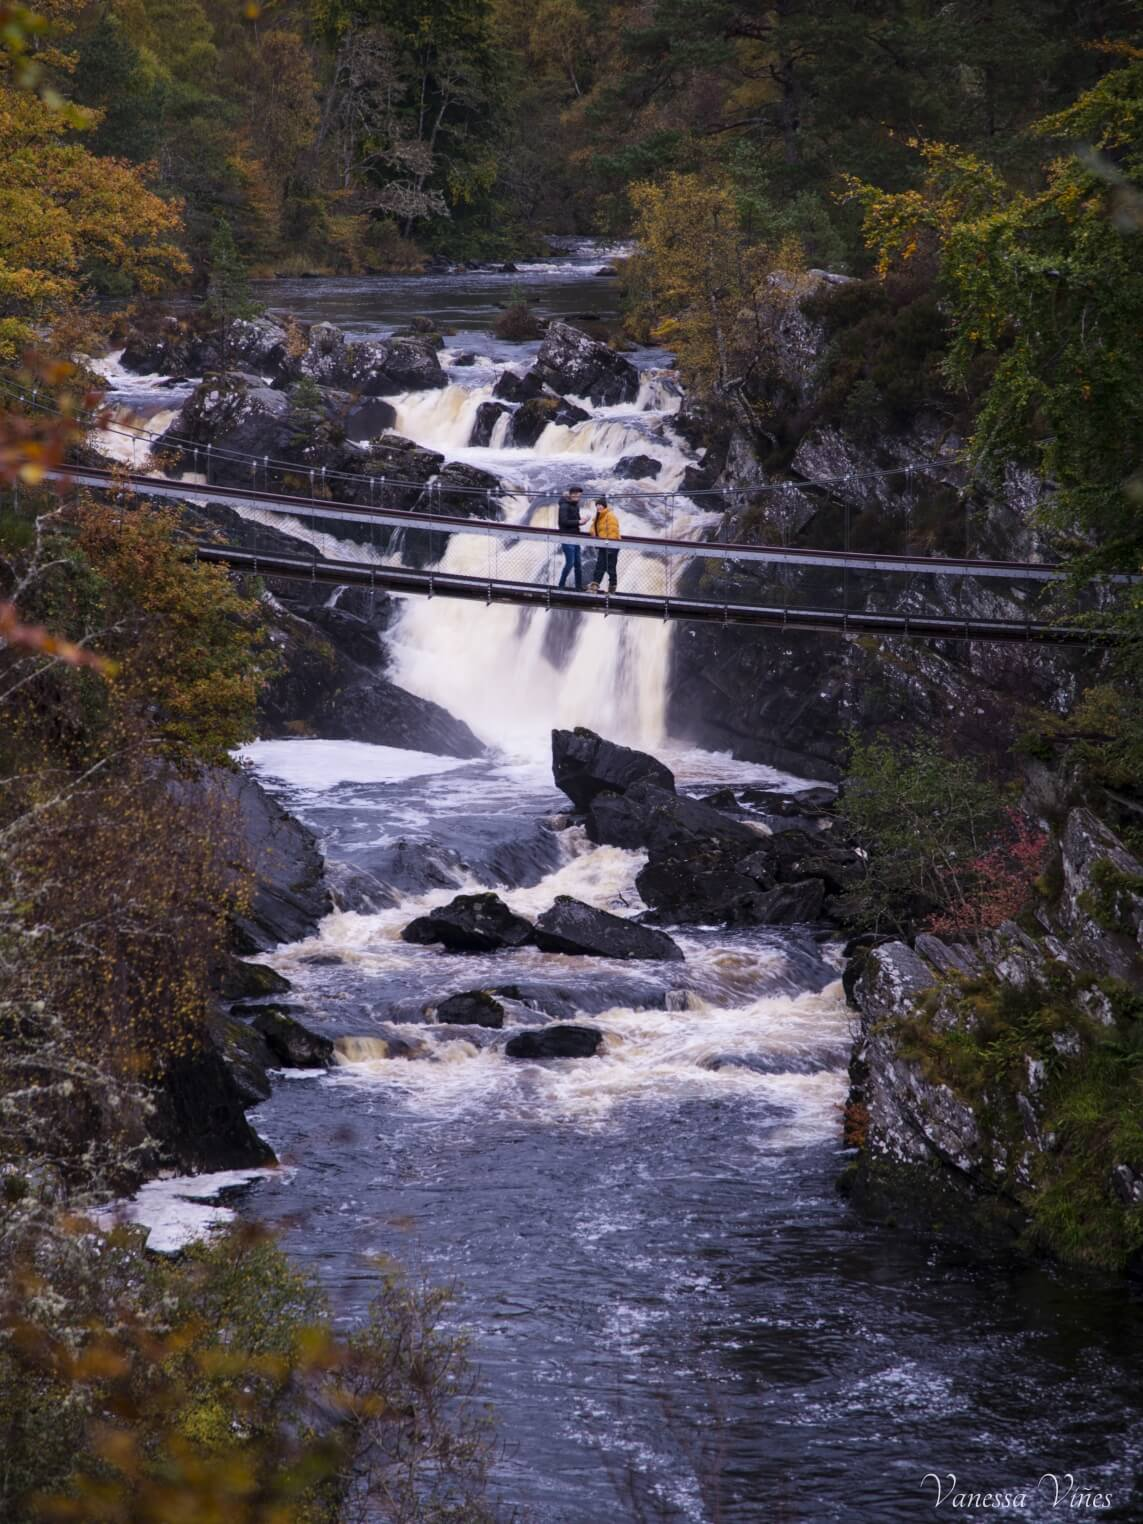 Crossing bridge in Rogie Falls